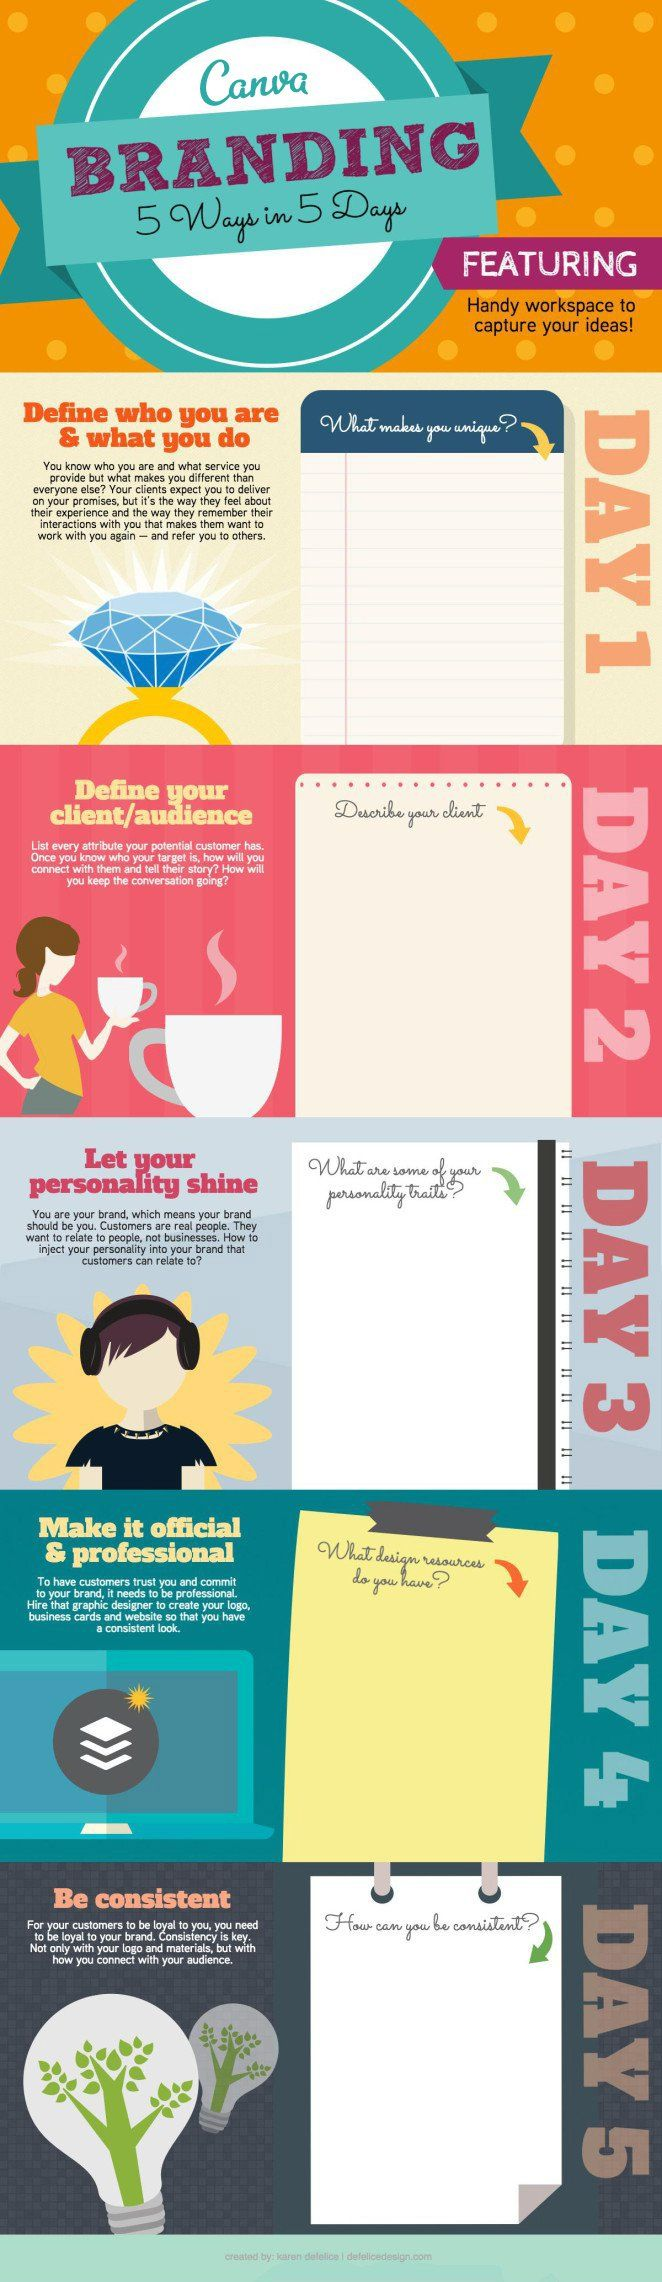 How To Build A Brand In 5 Days: Tips From A Designer #Infographic via @canva #designschool